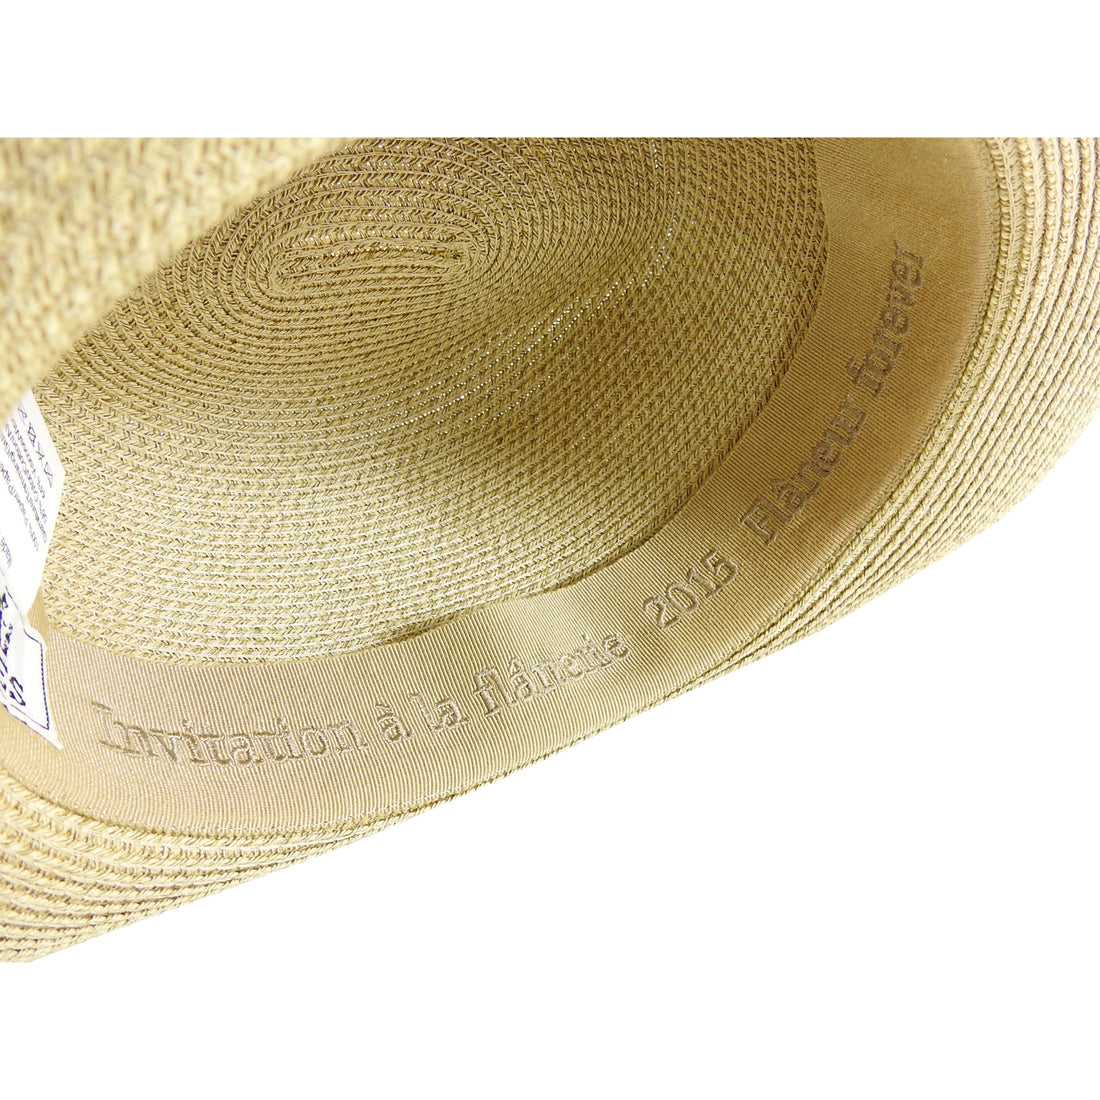 Hermes 2015 Invitation a la Flanerie Straw Hat